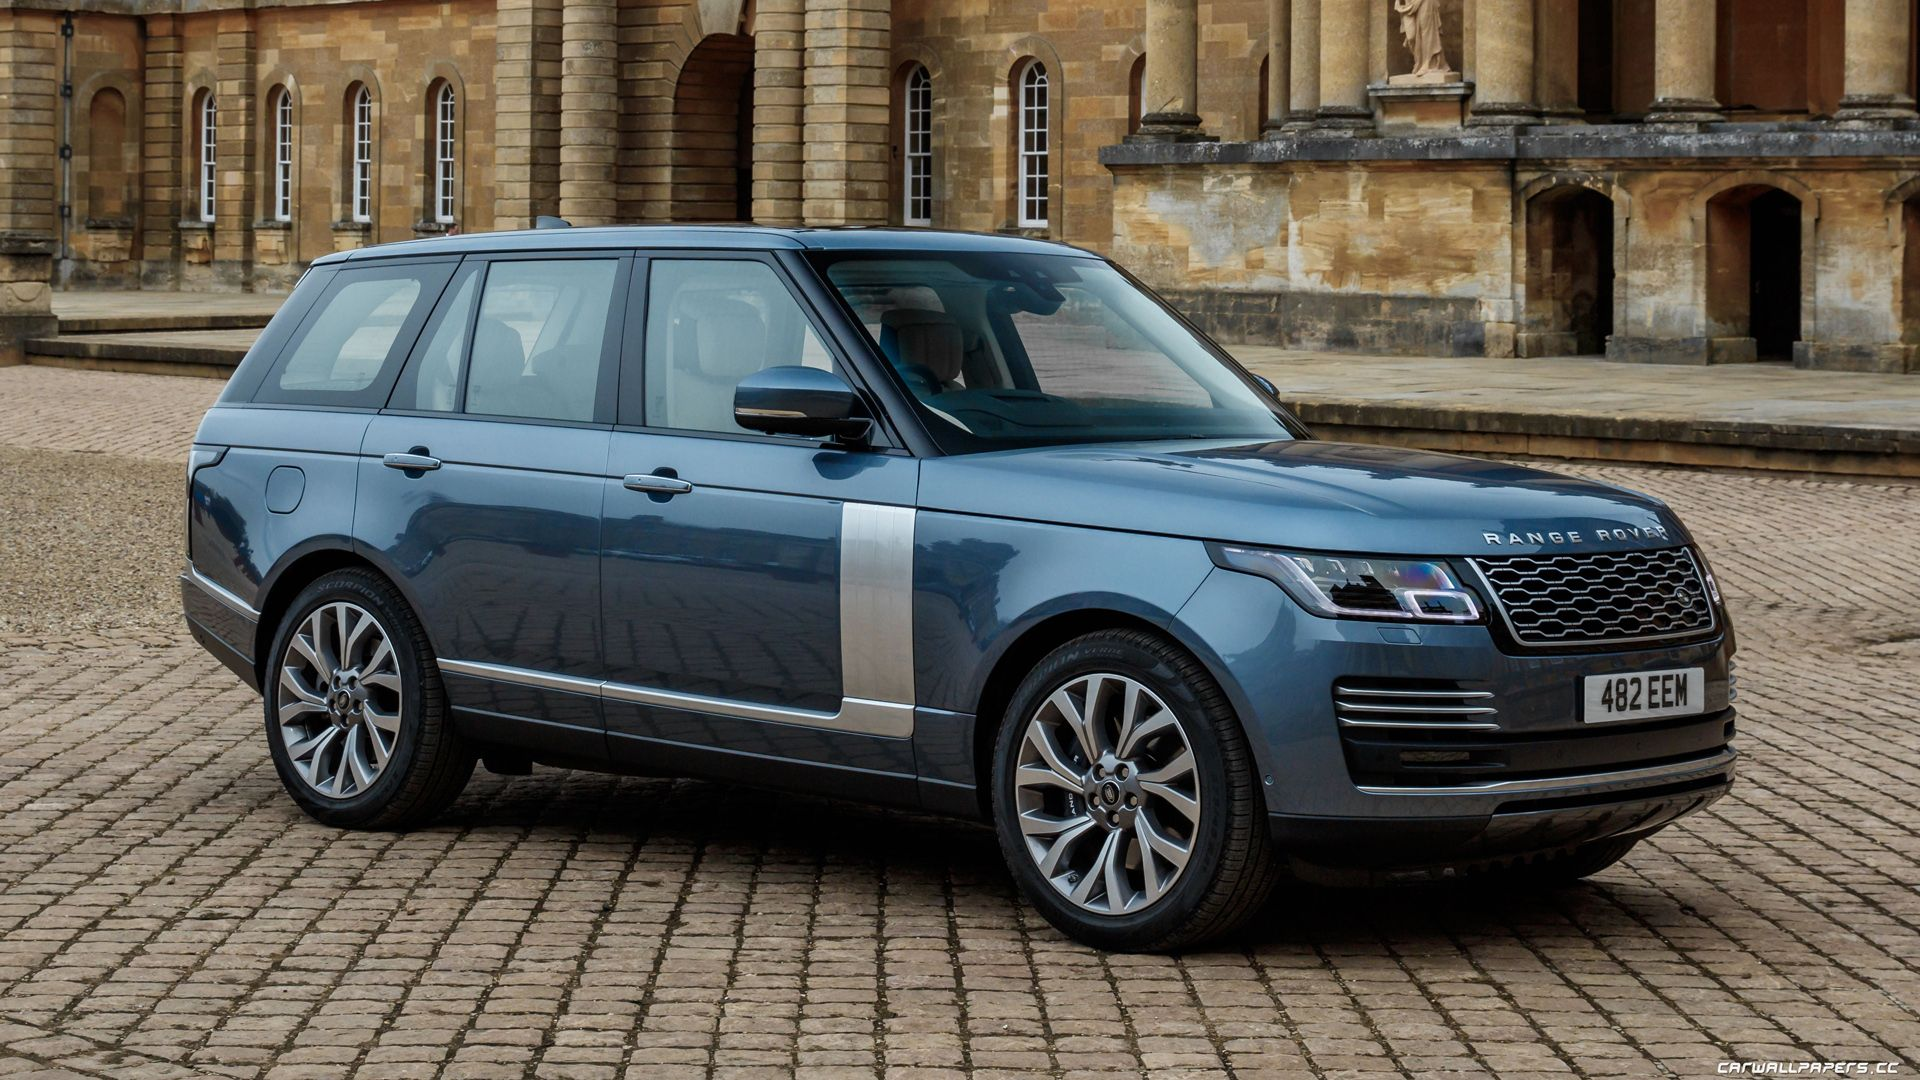 Range Rover Autobiography Wallpapers Wallpaper Cave